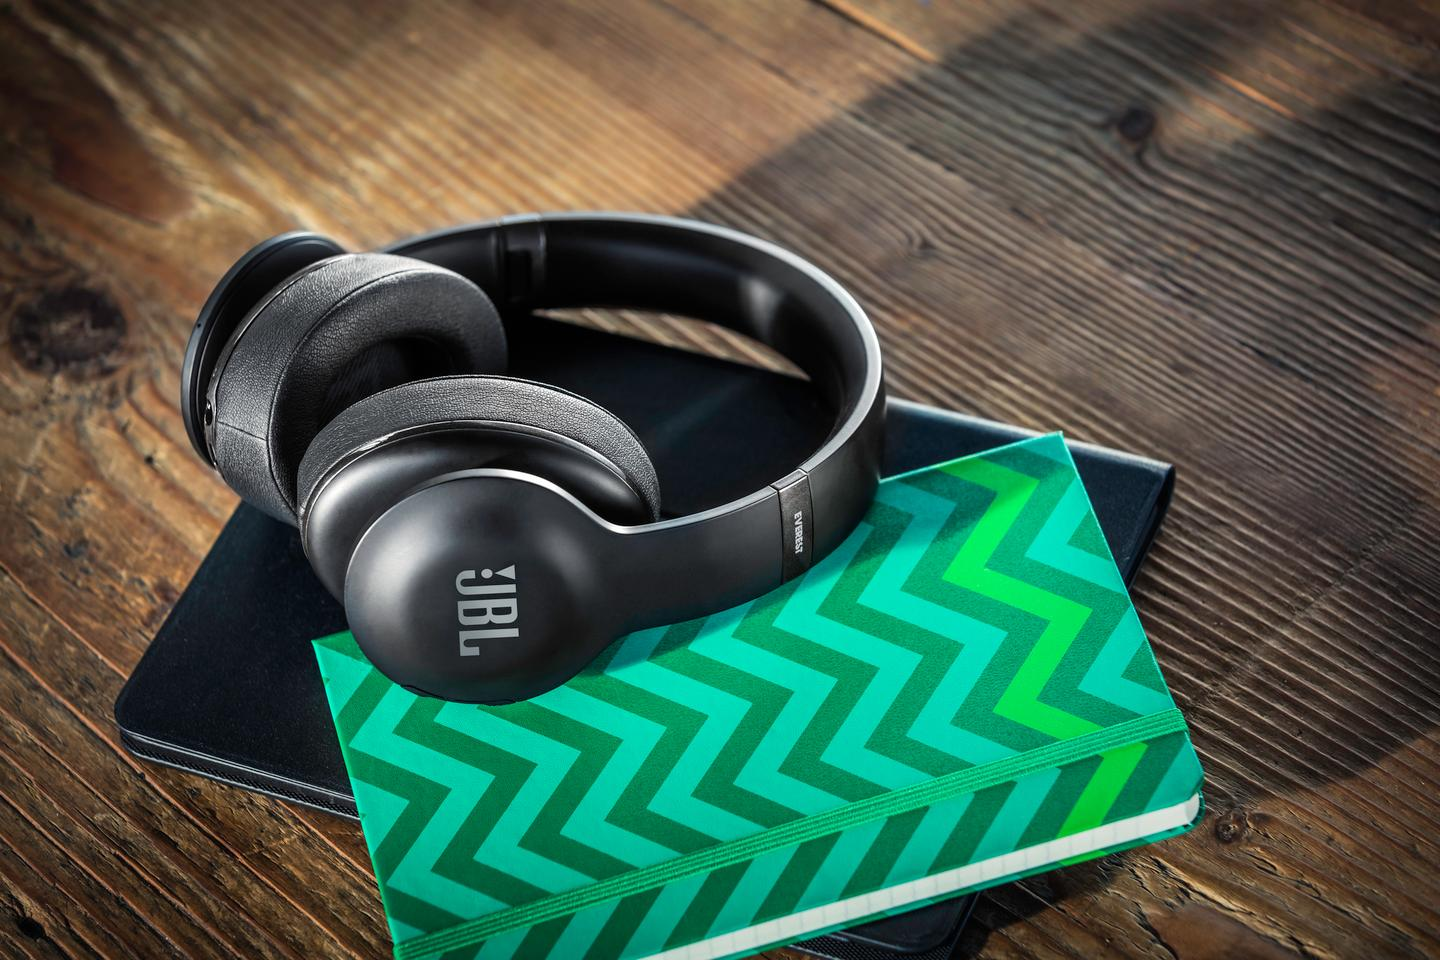 The JBL Everest 700 Elite combine wireless connectivity with advanced audio features